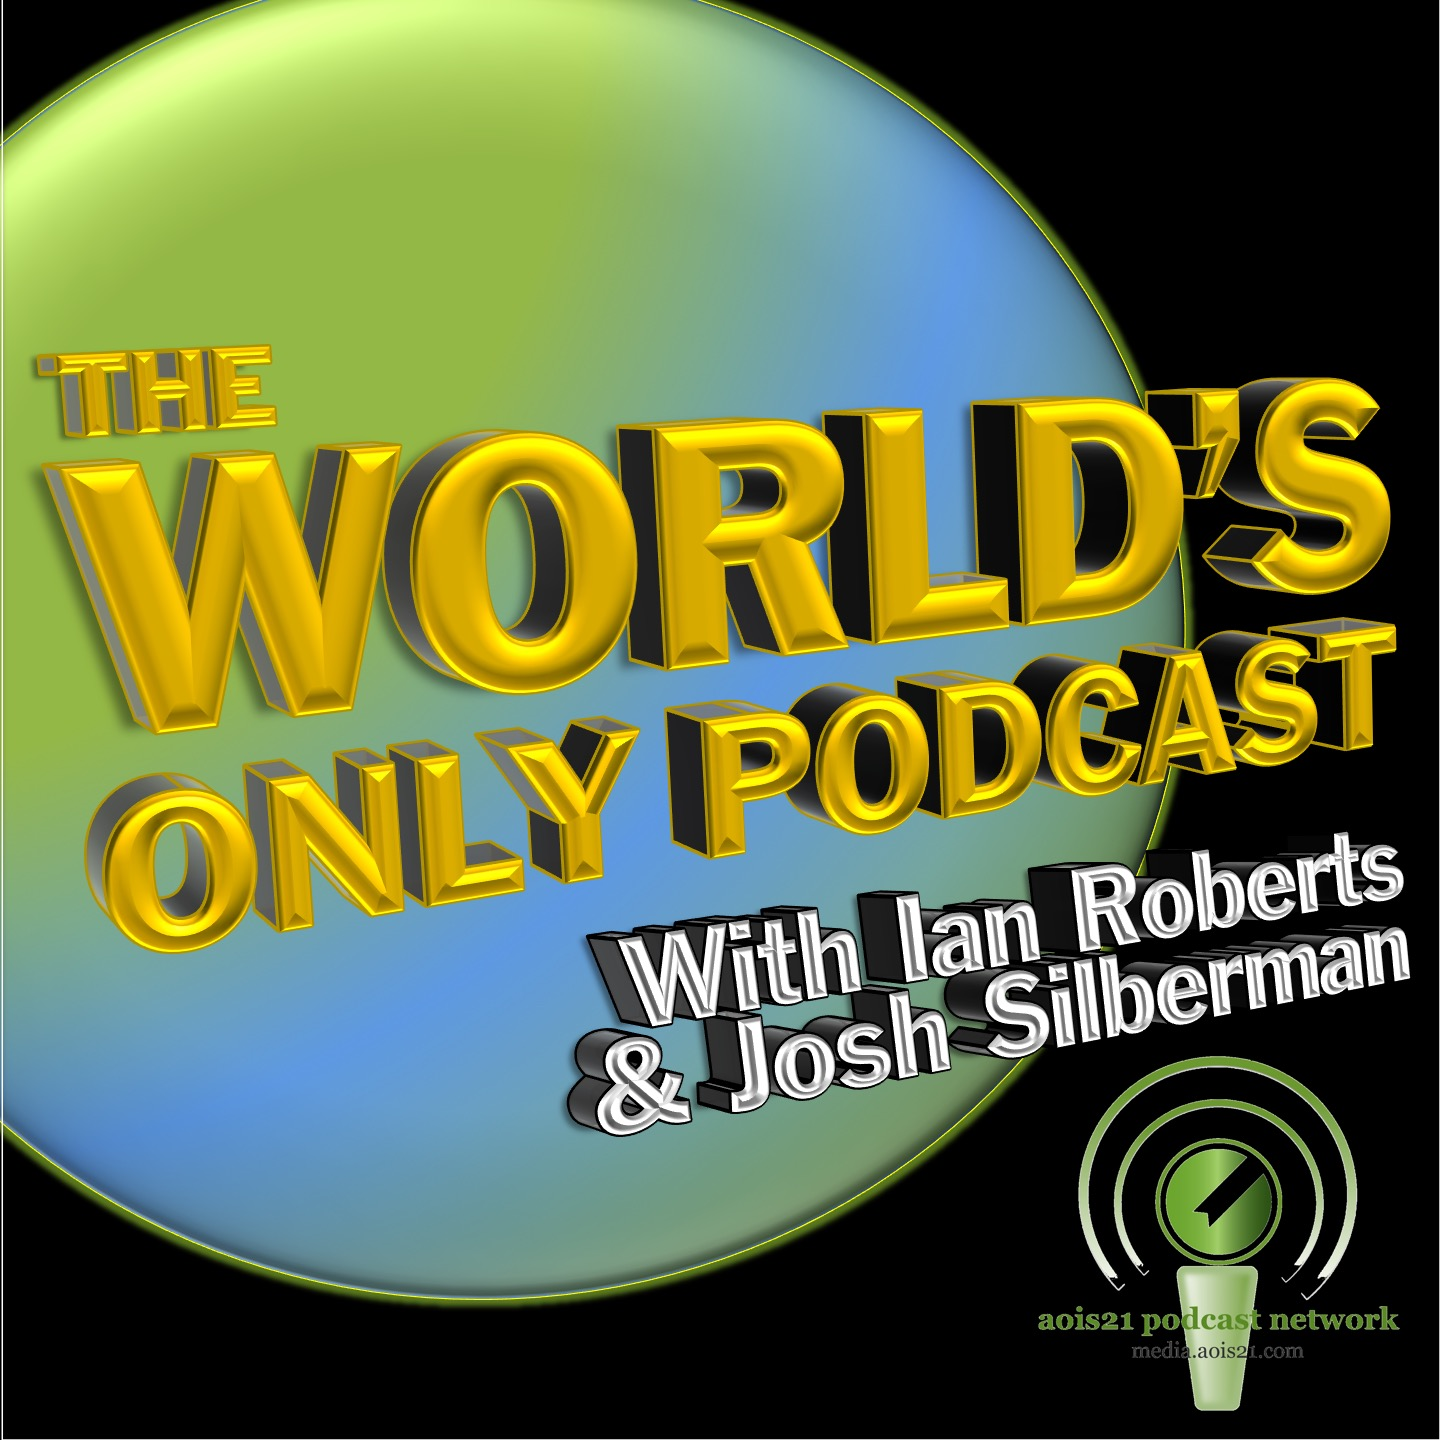 The World's Only Podcast with Ian Roberts and Josh Silberman